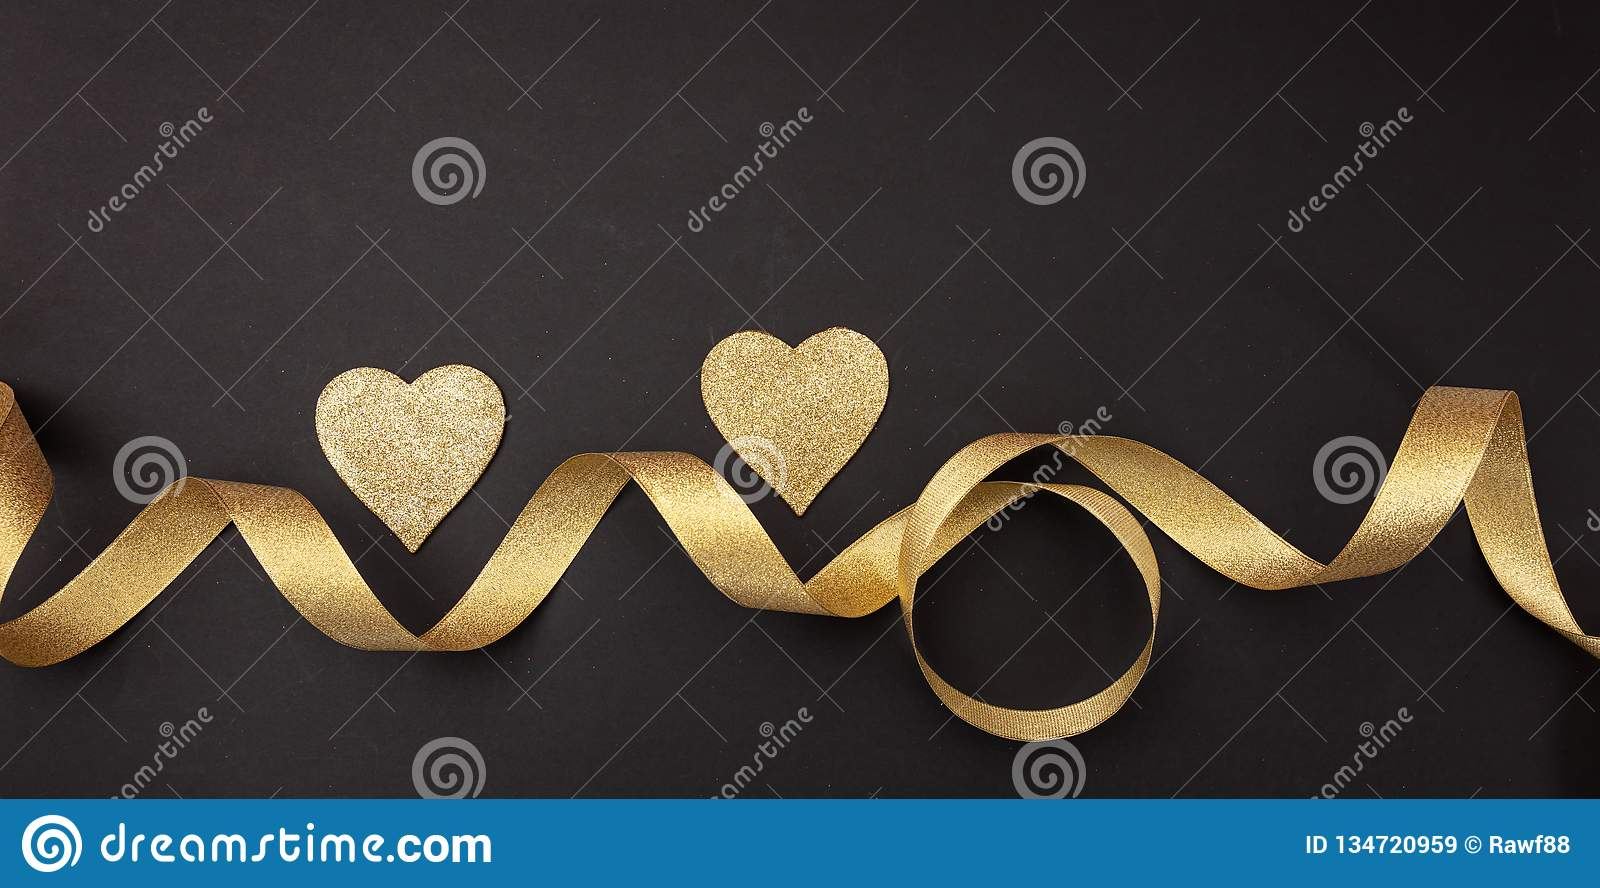 Valentines day. Top view of two golden hearts with satin ribbon against black background